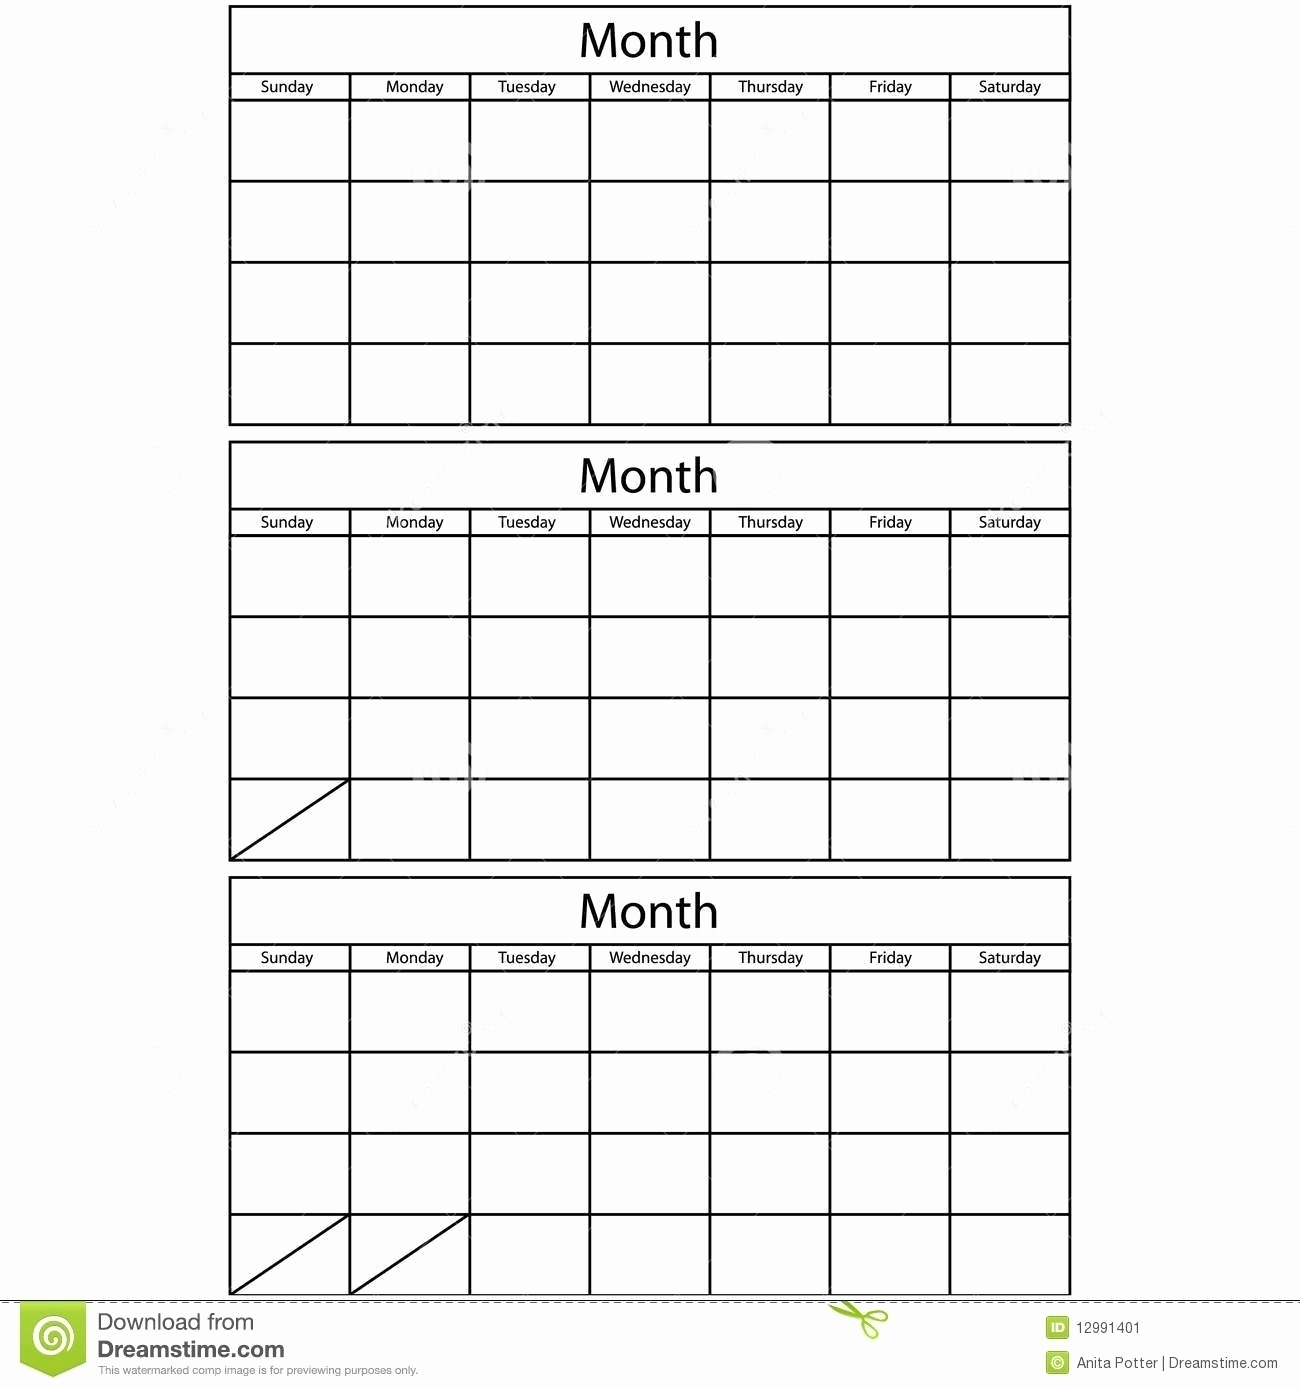 Blank Monthly Lanner Template Calendars To Rint Free Excel Download throughout 3 Month Calendar Printable Template